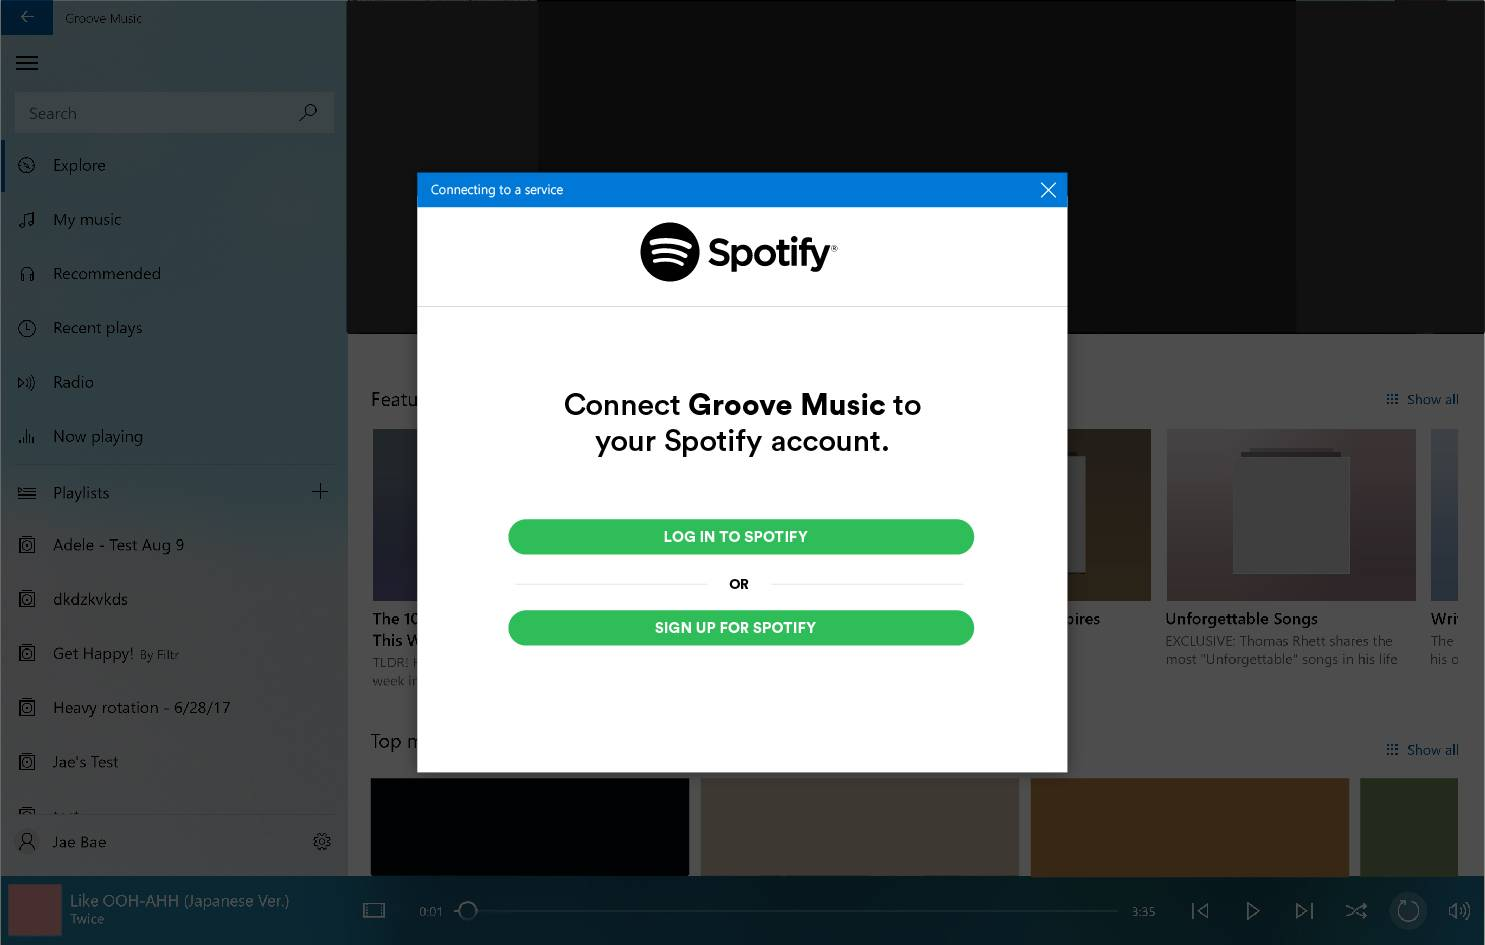 Microsoft to discontinue Groove Music, asks users to go to